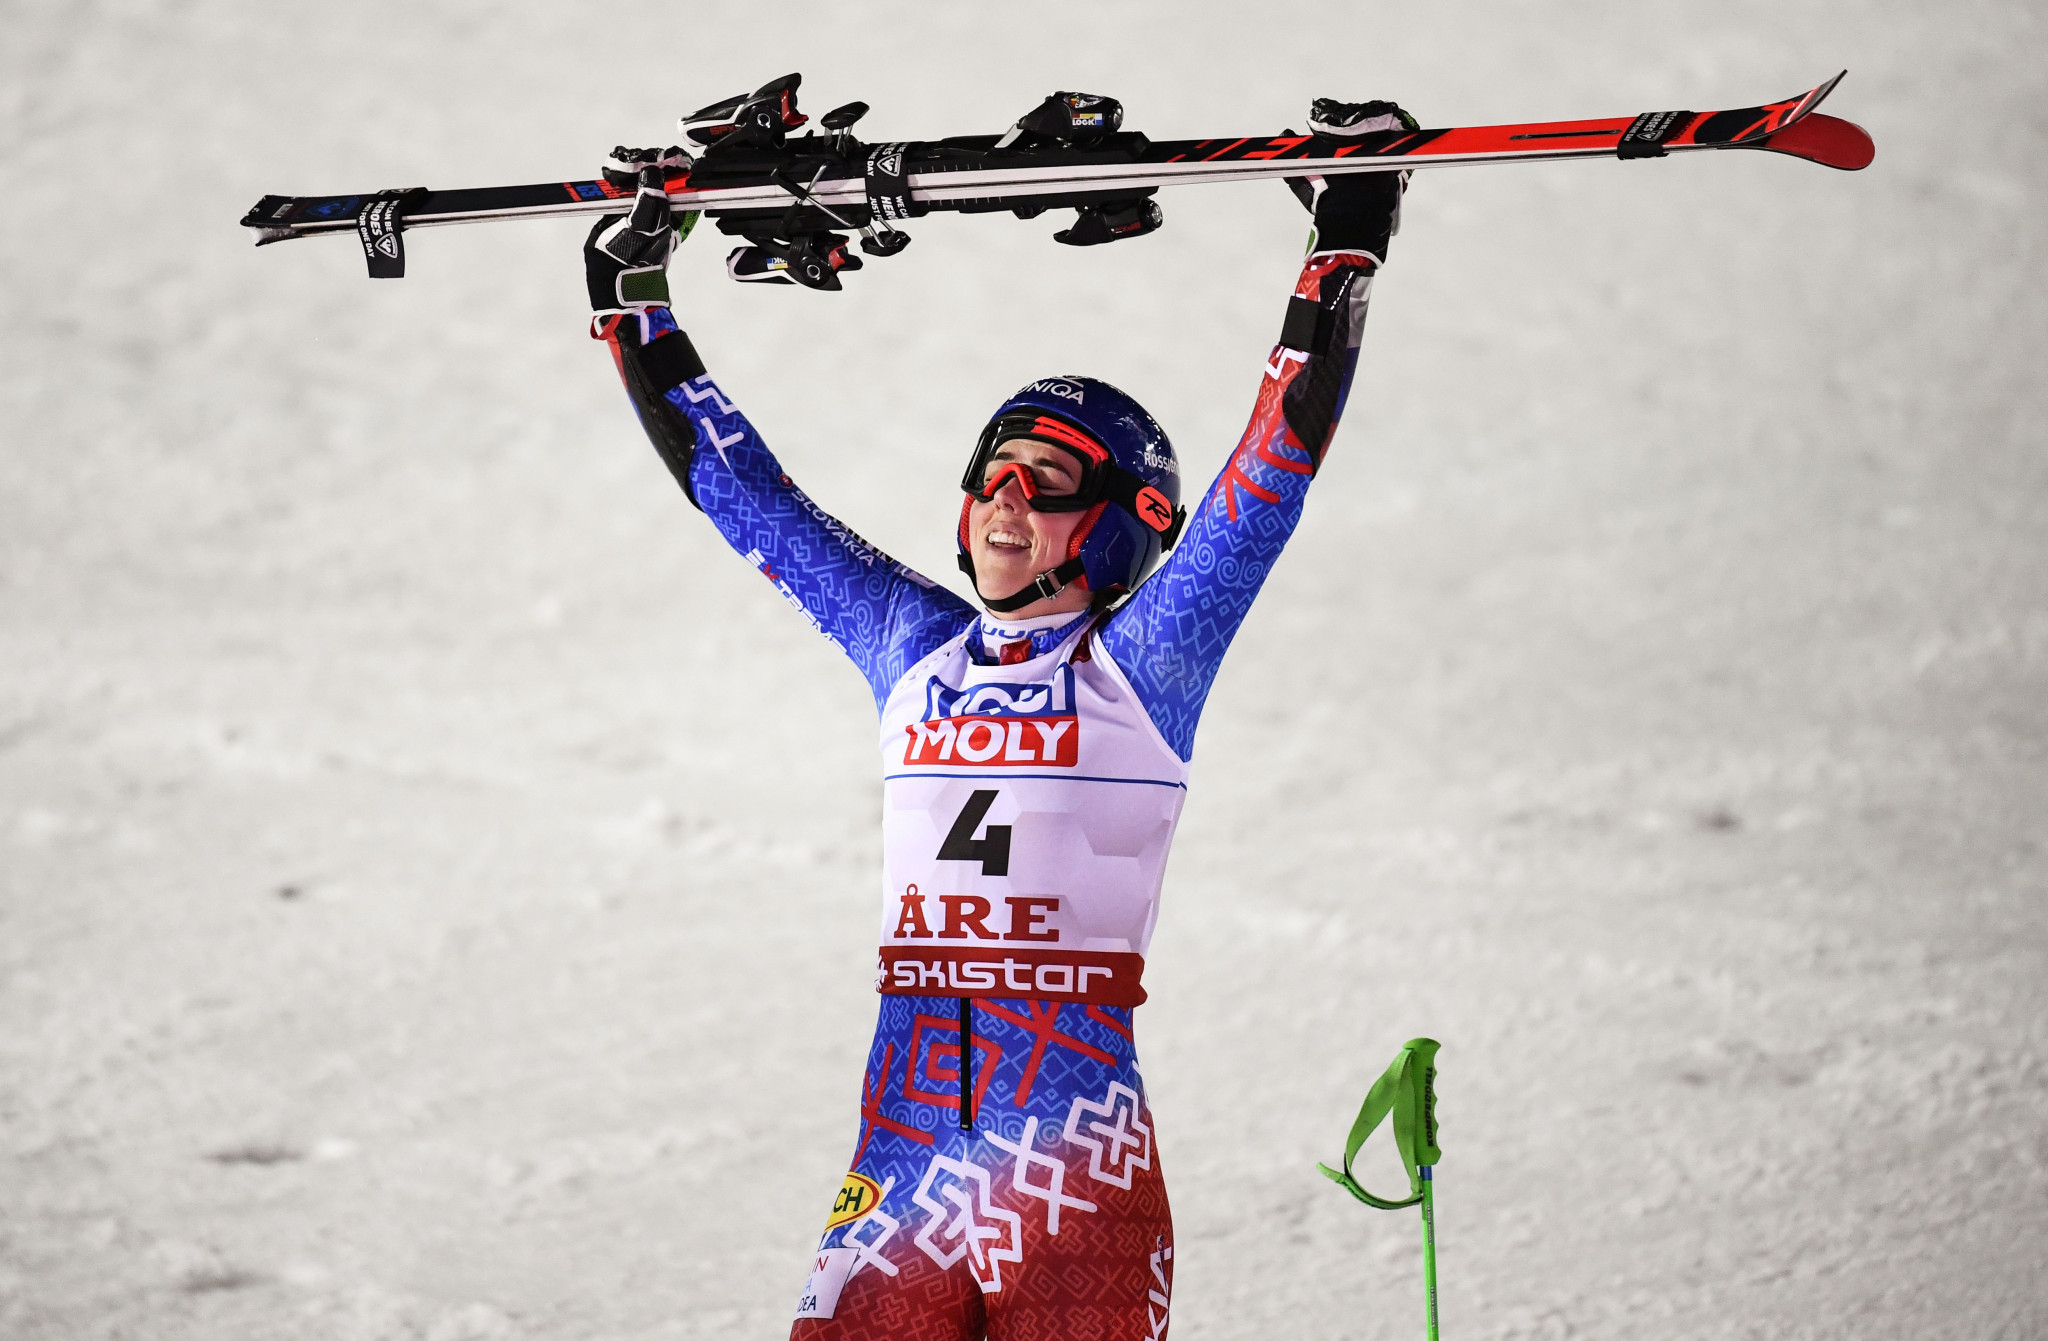 Petra Vlhova won the women's giant slalom at the World Alpine Skiing Championships in Åre to claim her first world gold ©Getty Images